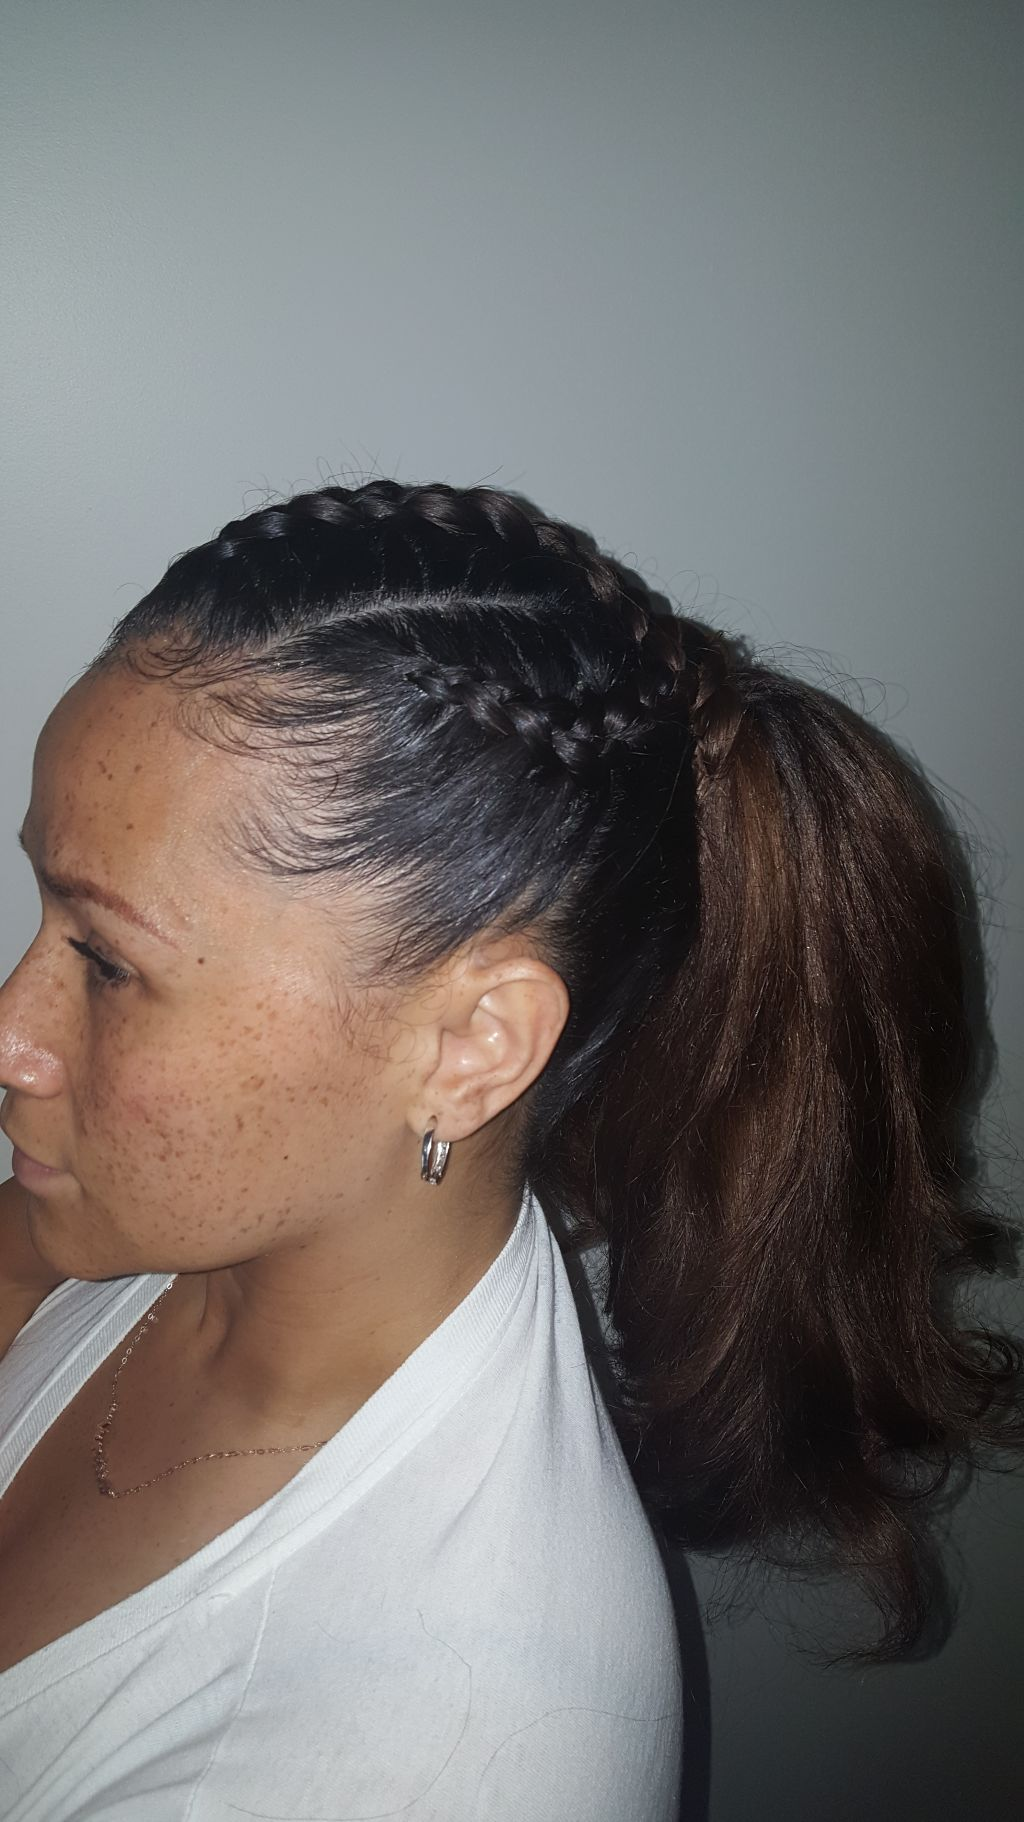 GET THE LOOK: Evoke Springtime Fly With These Braided Styles